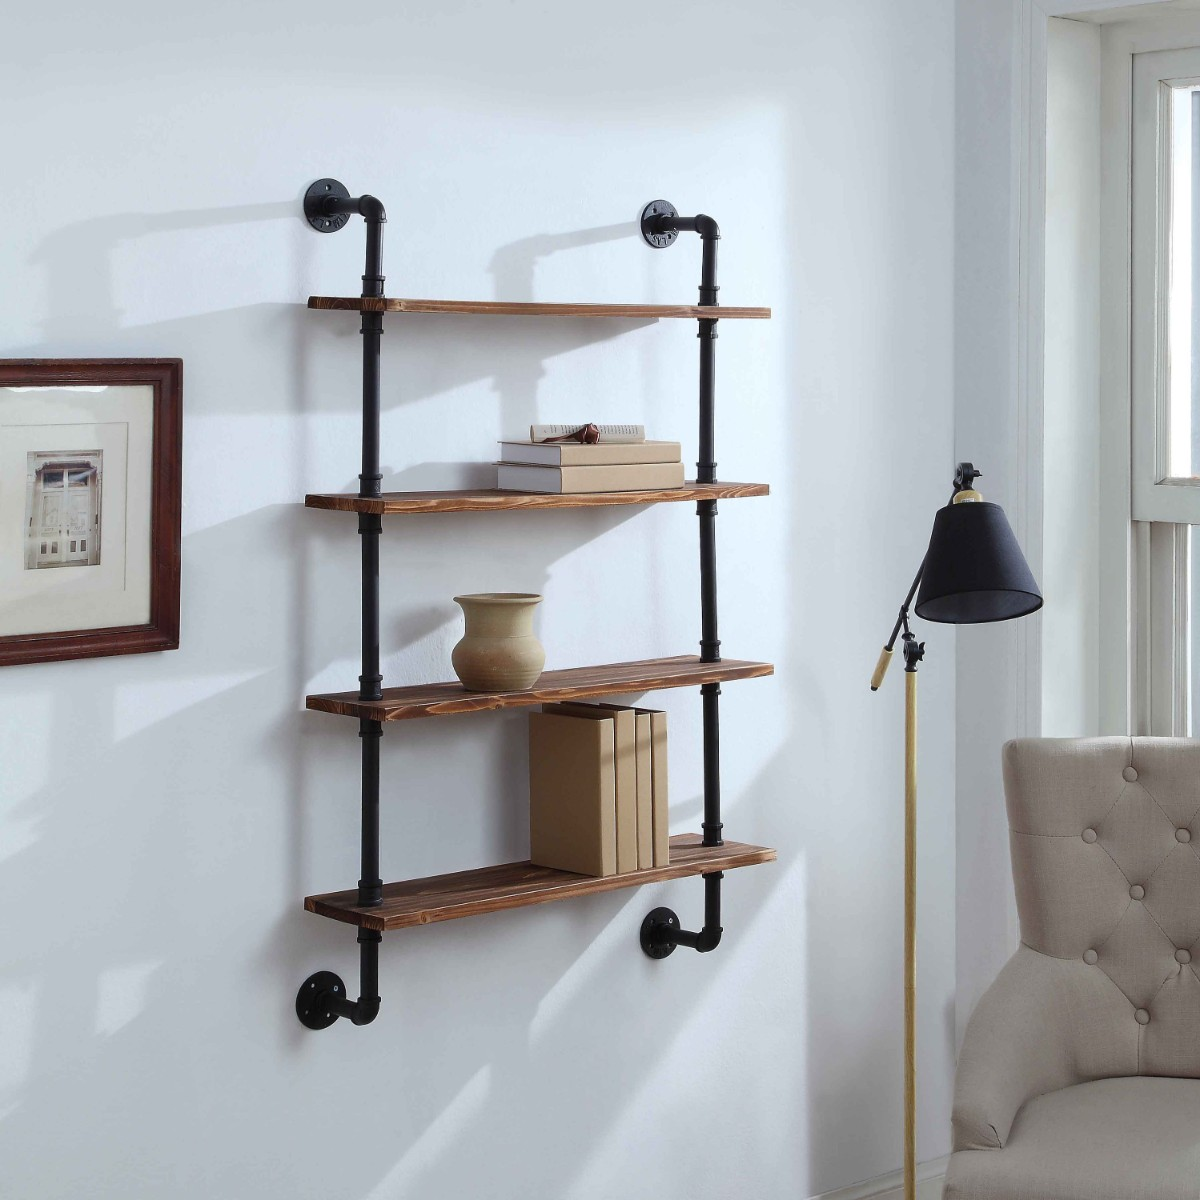 Anacortes Four Shelf Piping - 4D Concepts